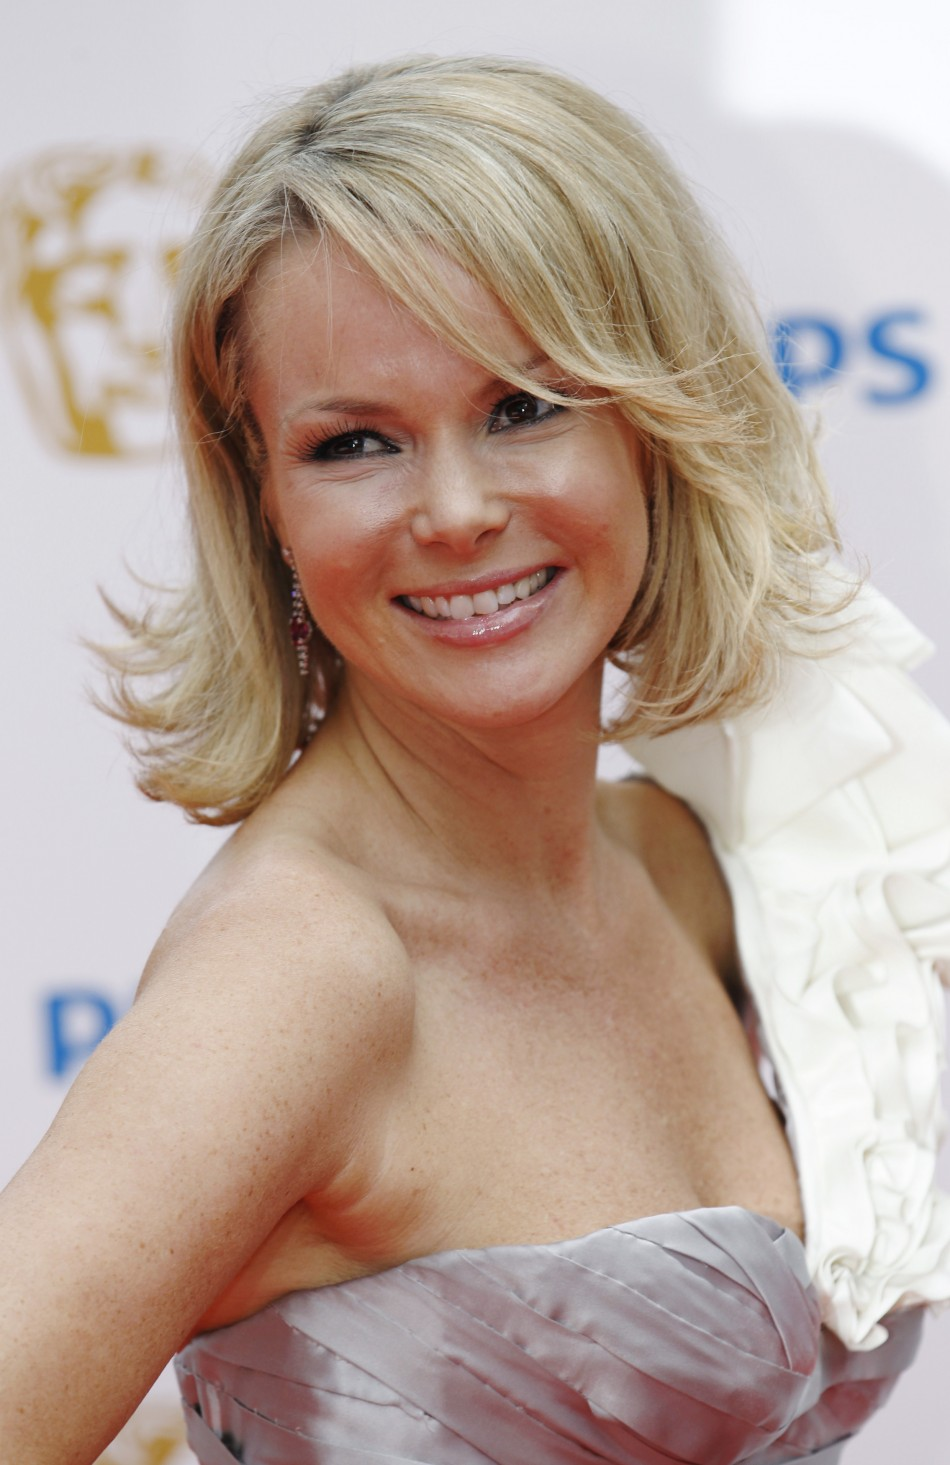 Actress Amanda Holden